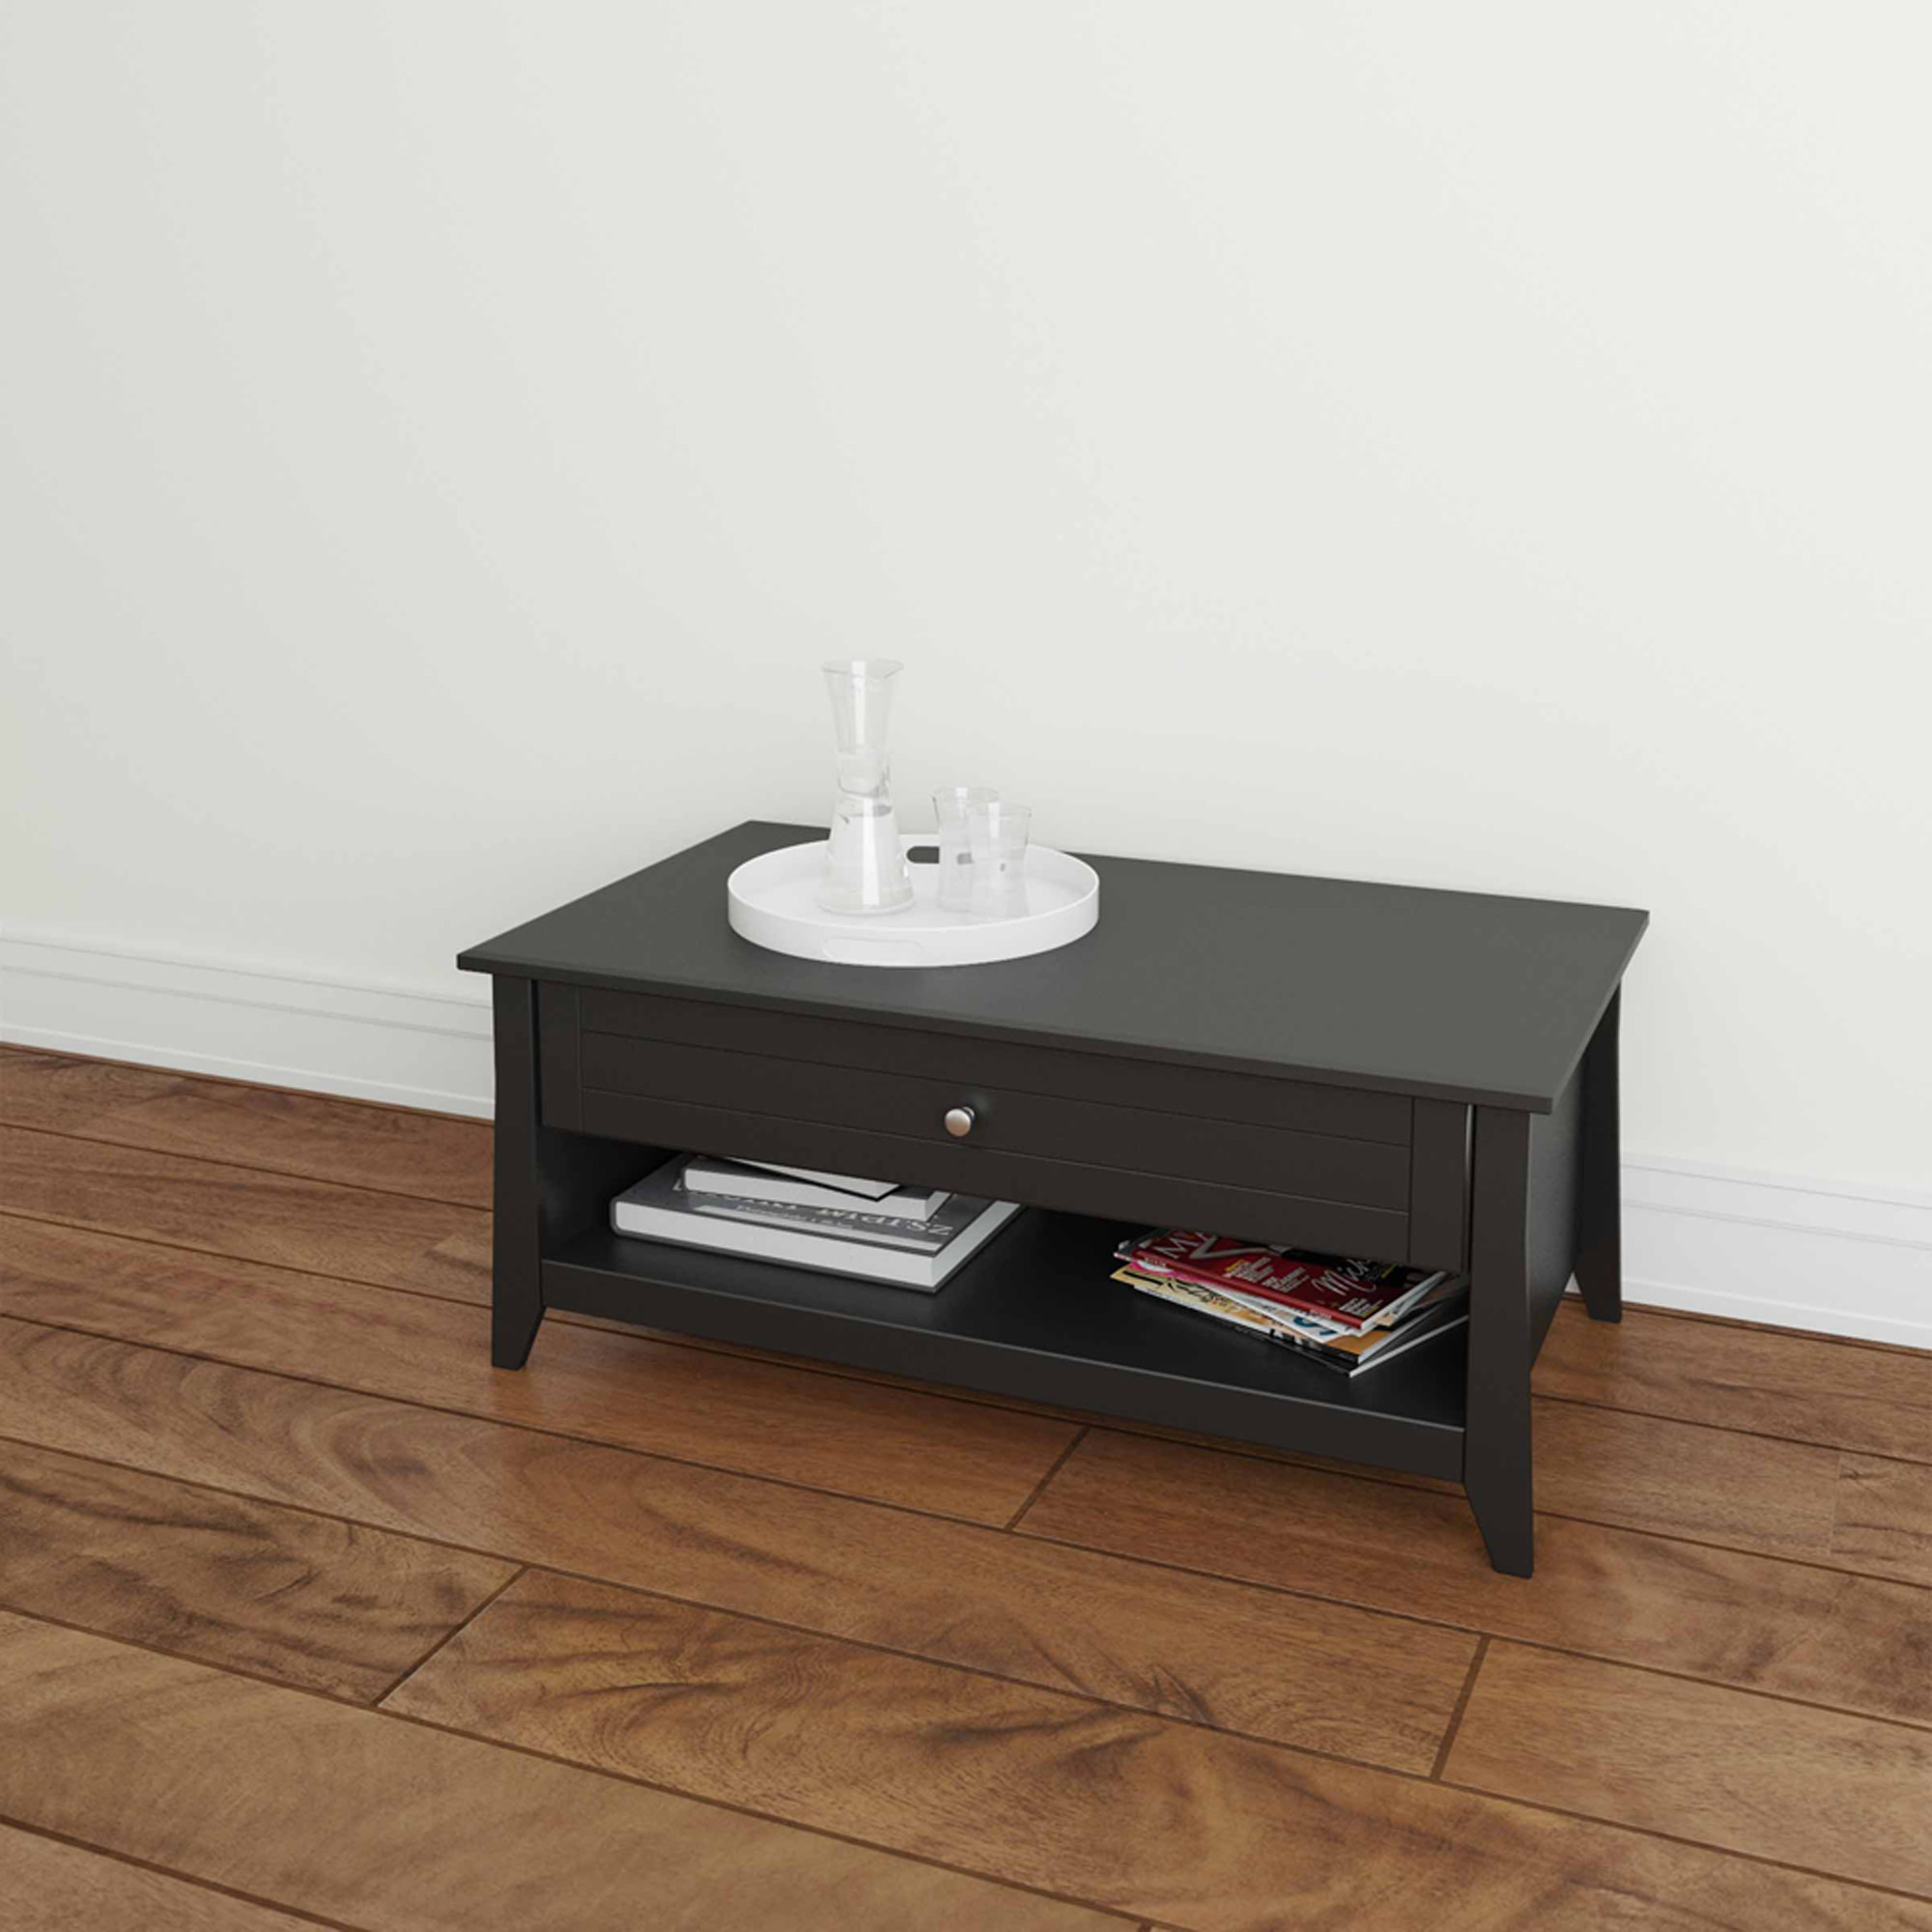 Tuxedo Coffee Table, Black